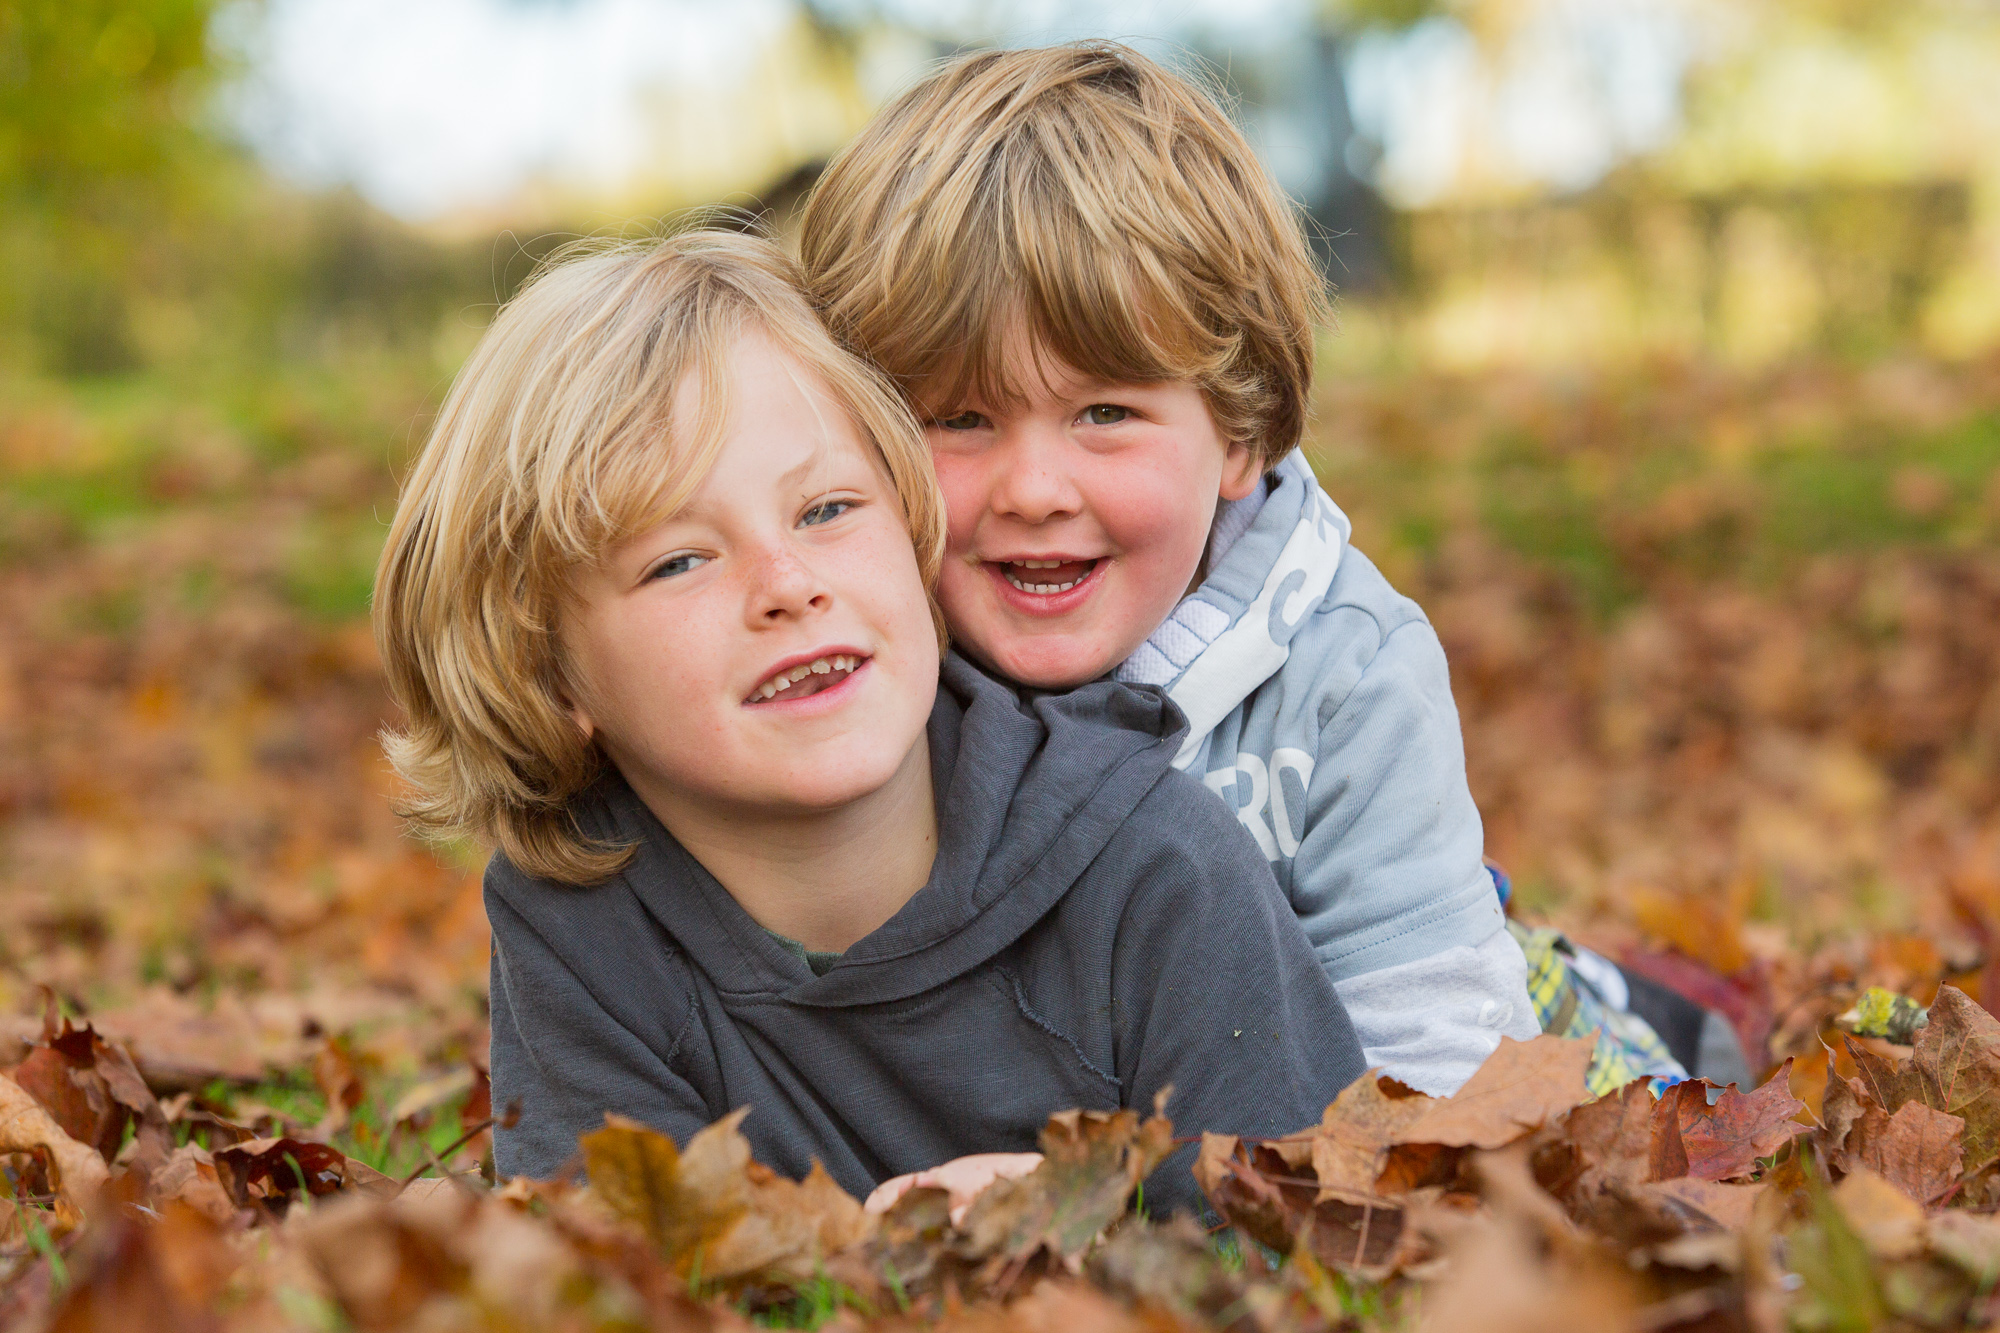 Brothers_in_Autumn_Leaves